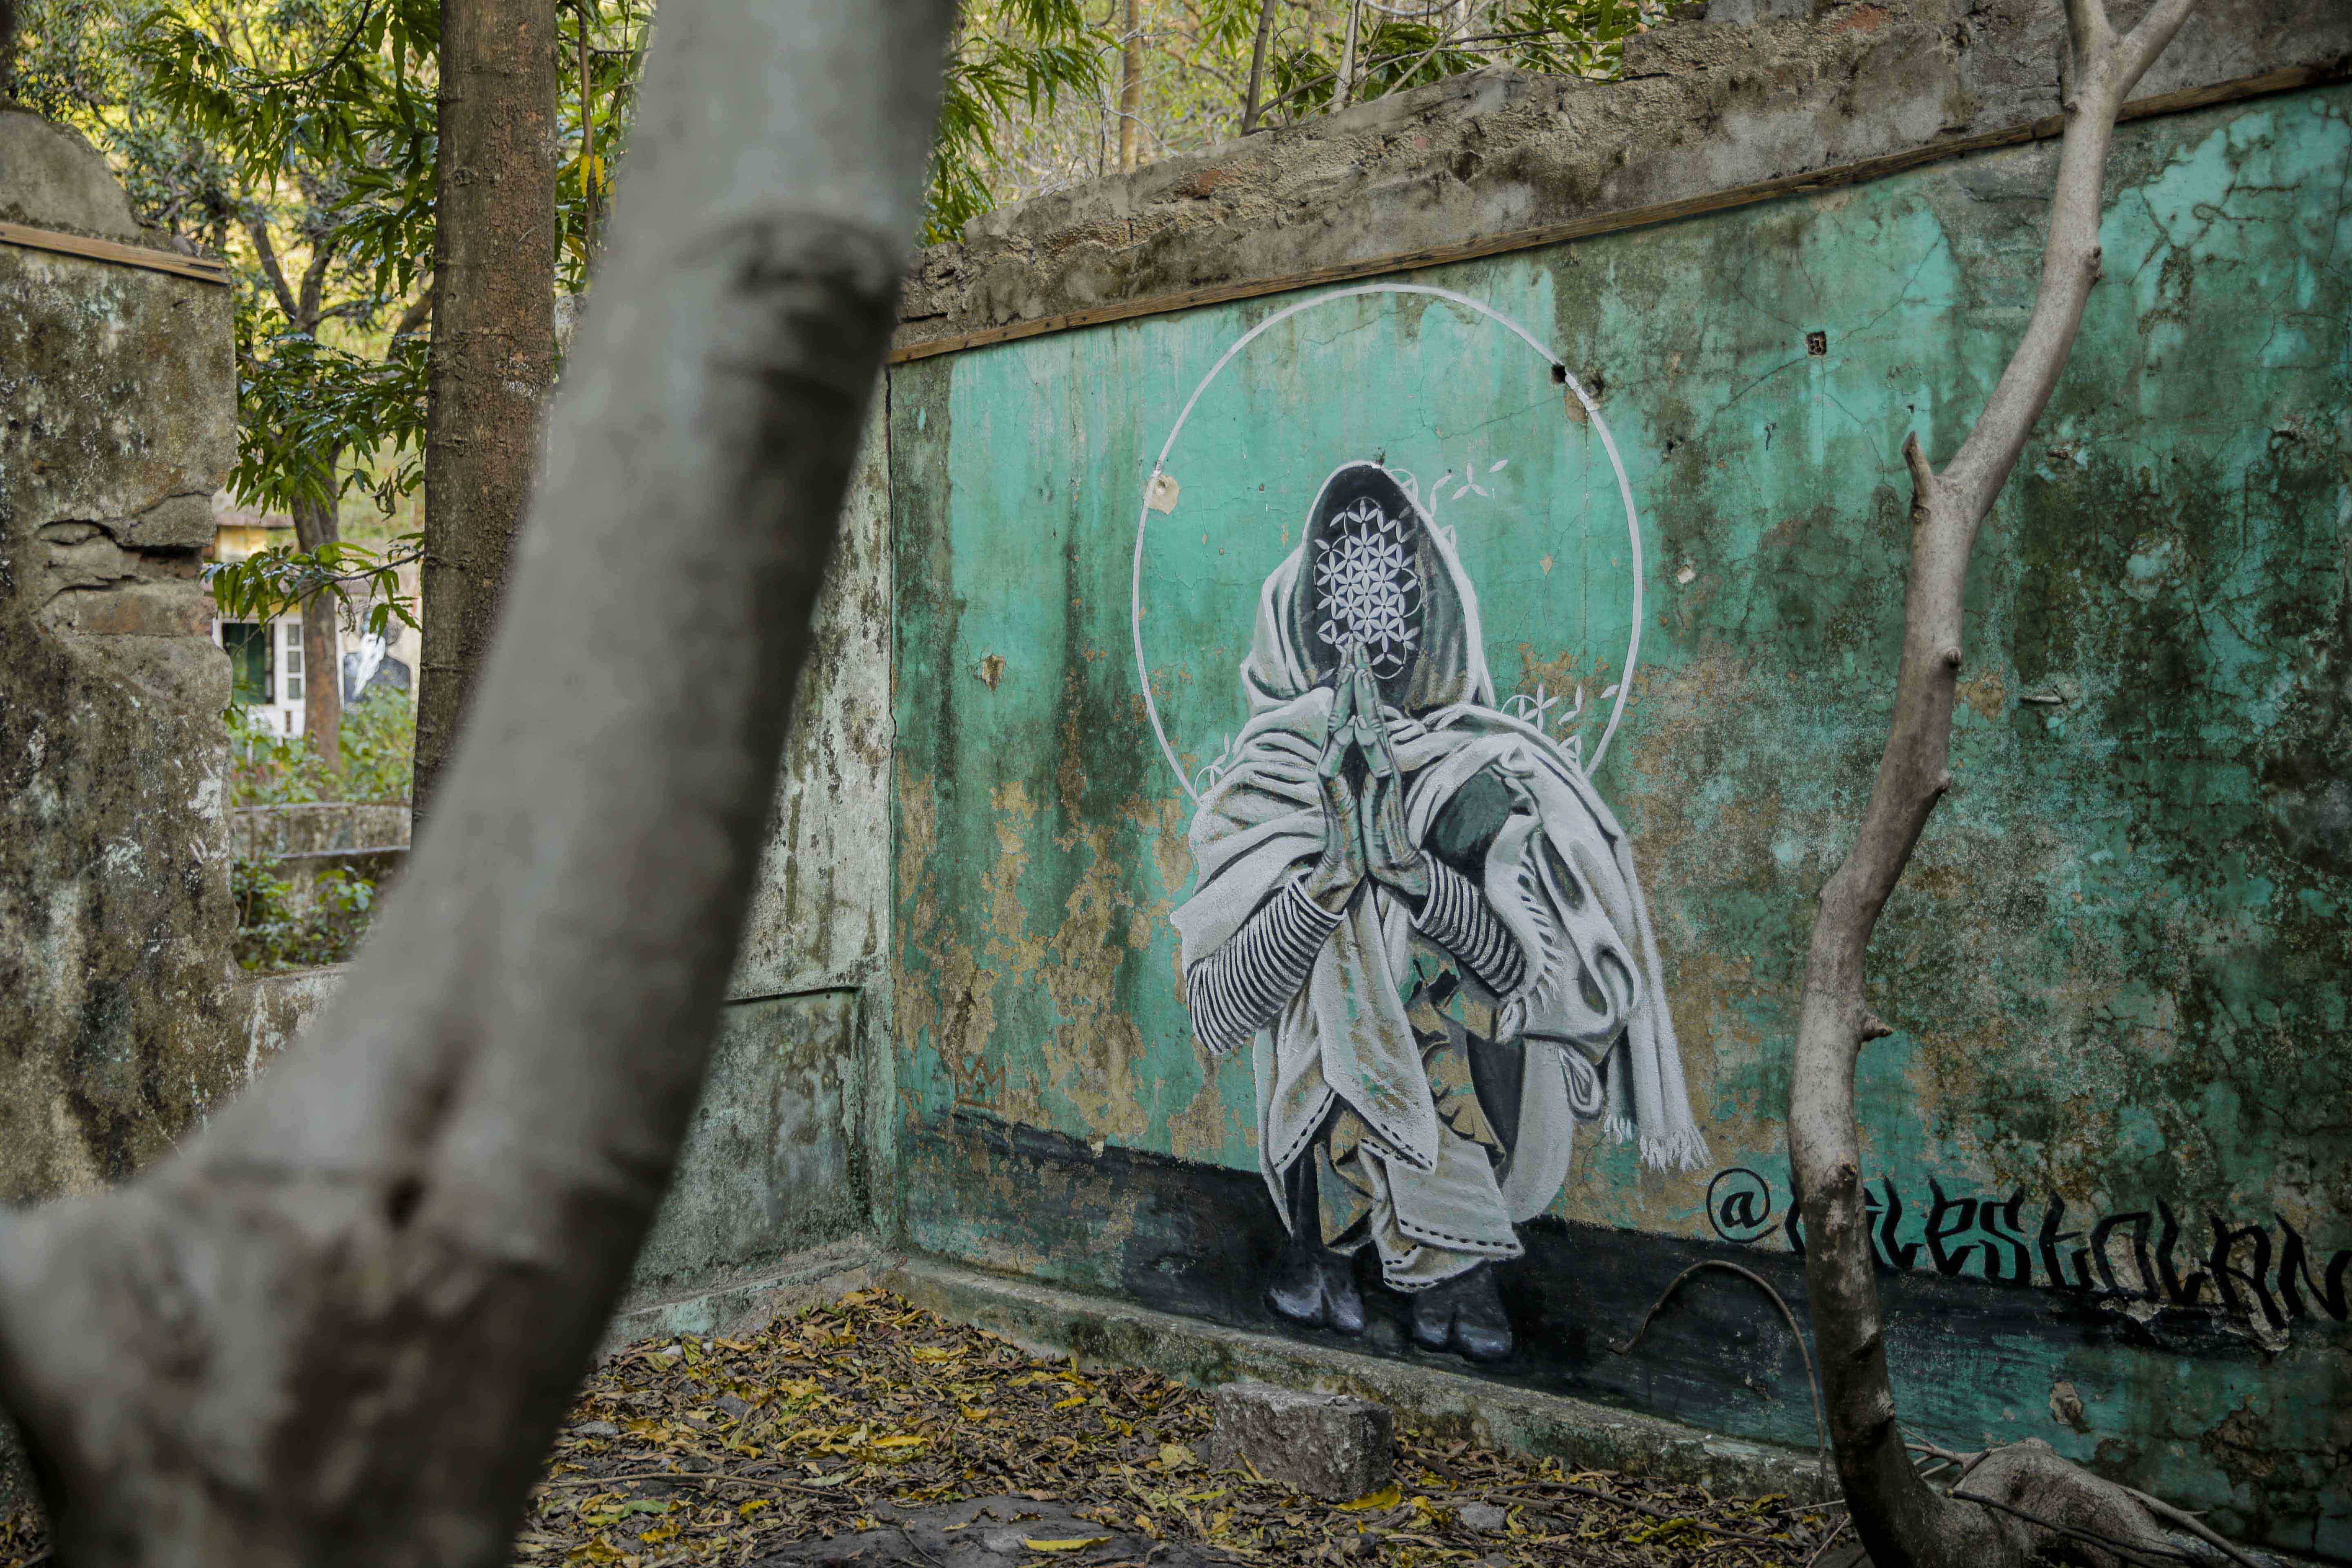 Artwork depicting someone meditating on the abandoned walls of the ashram